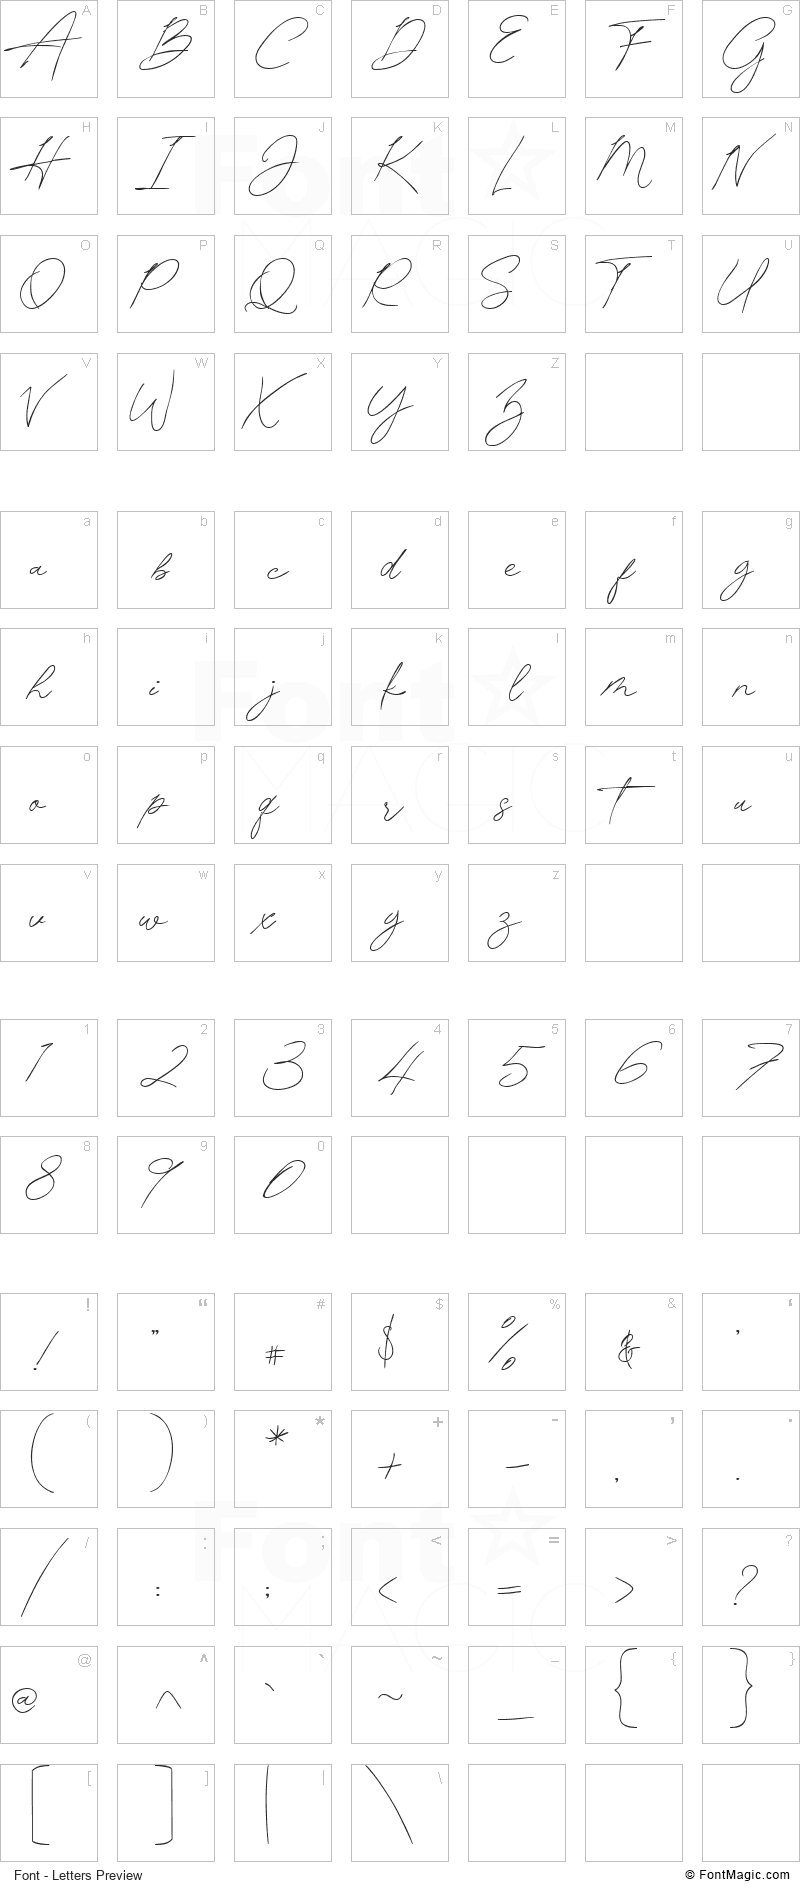 Pamsetto Font - All Latters Preview Chart